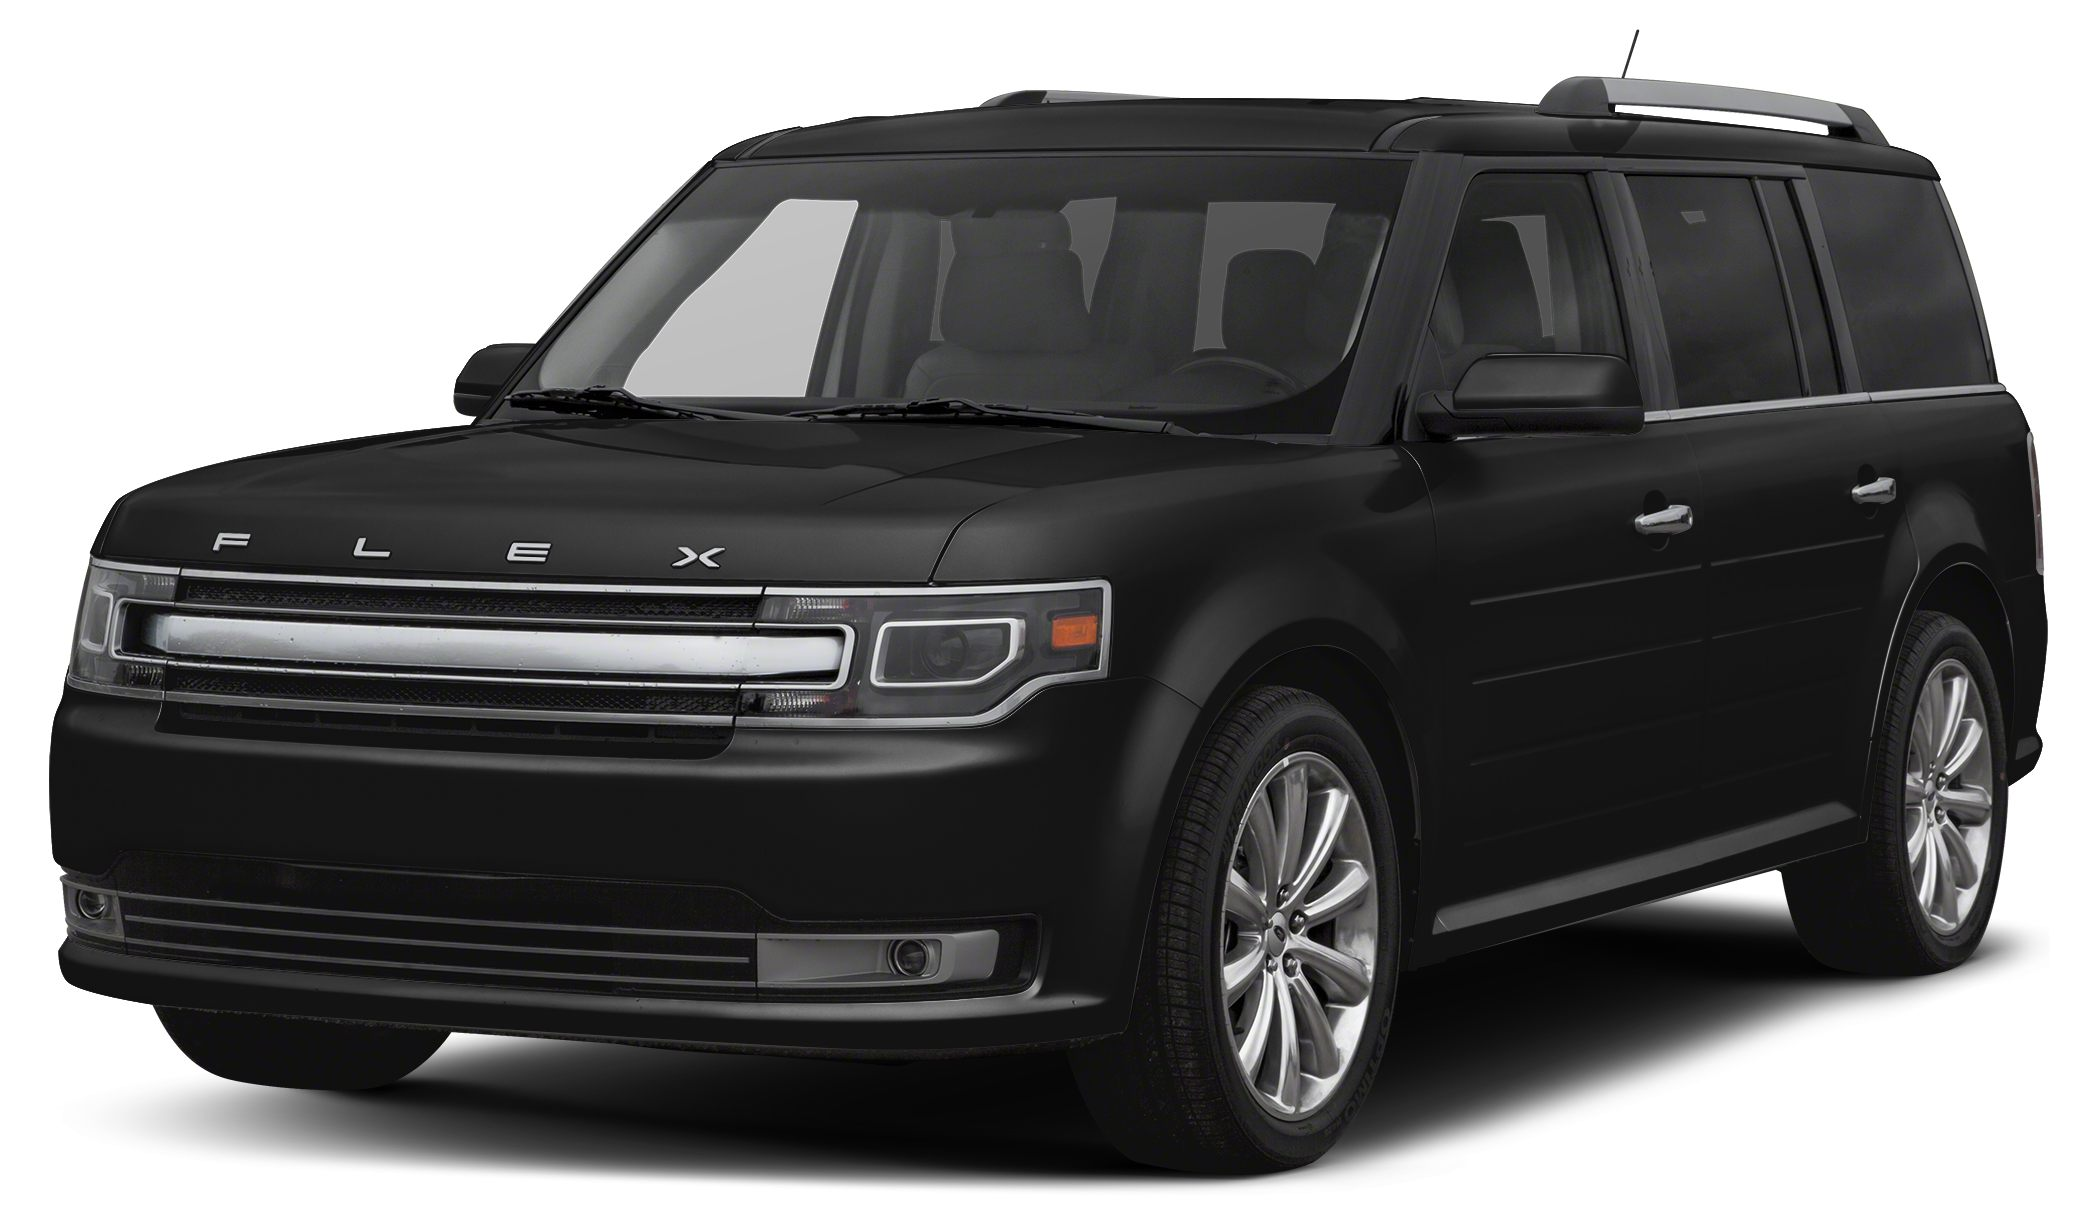 2013 Ford Flex Limited HIGHLY EQUIPPED ADAPTIVE CRUISE WCOLLISION WARNING 35L ECOBOOST AWD P